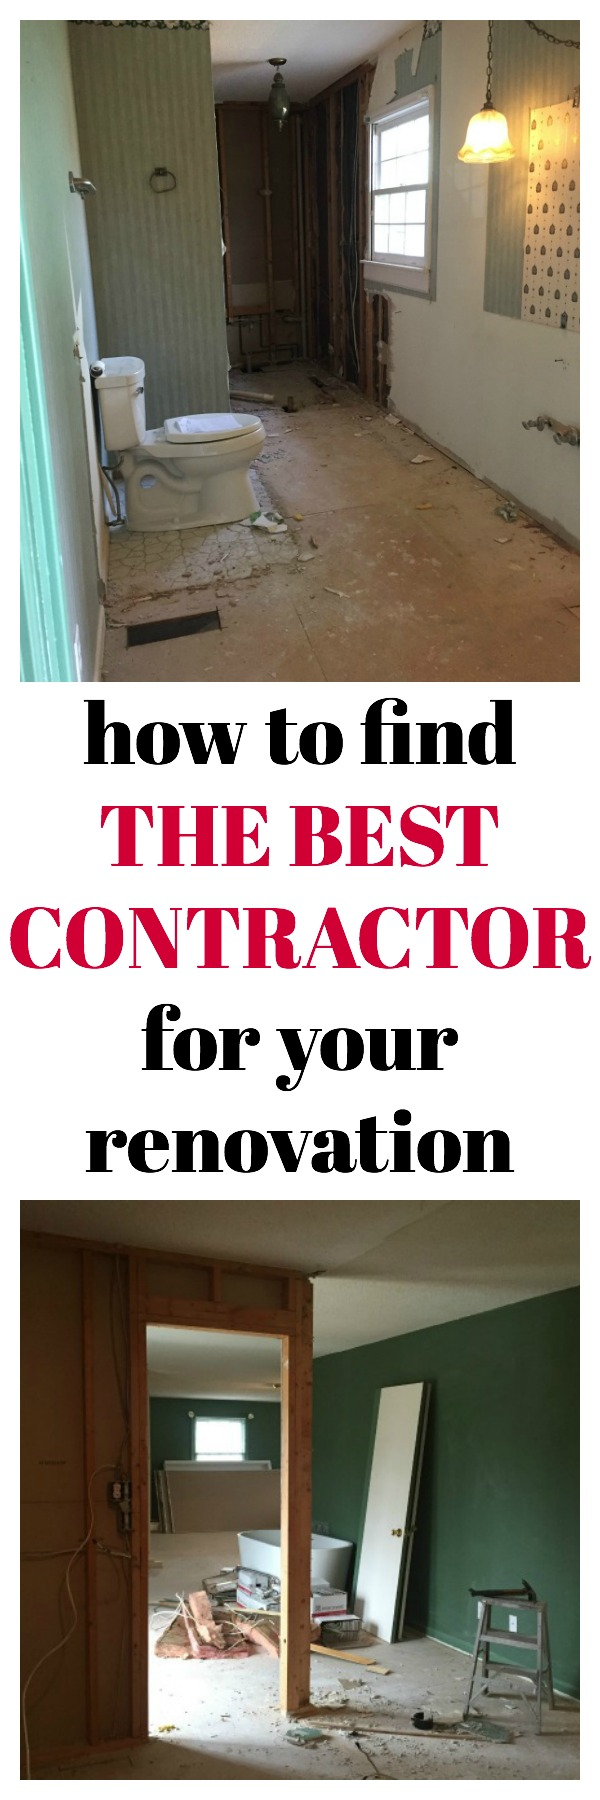 How to Find the Best Contractor | How to Work with a Contractor | Home Renovation Tips | Home Remodeling Tips, Tips for Finding a Contractor